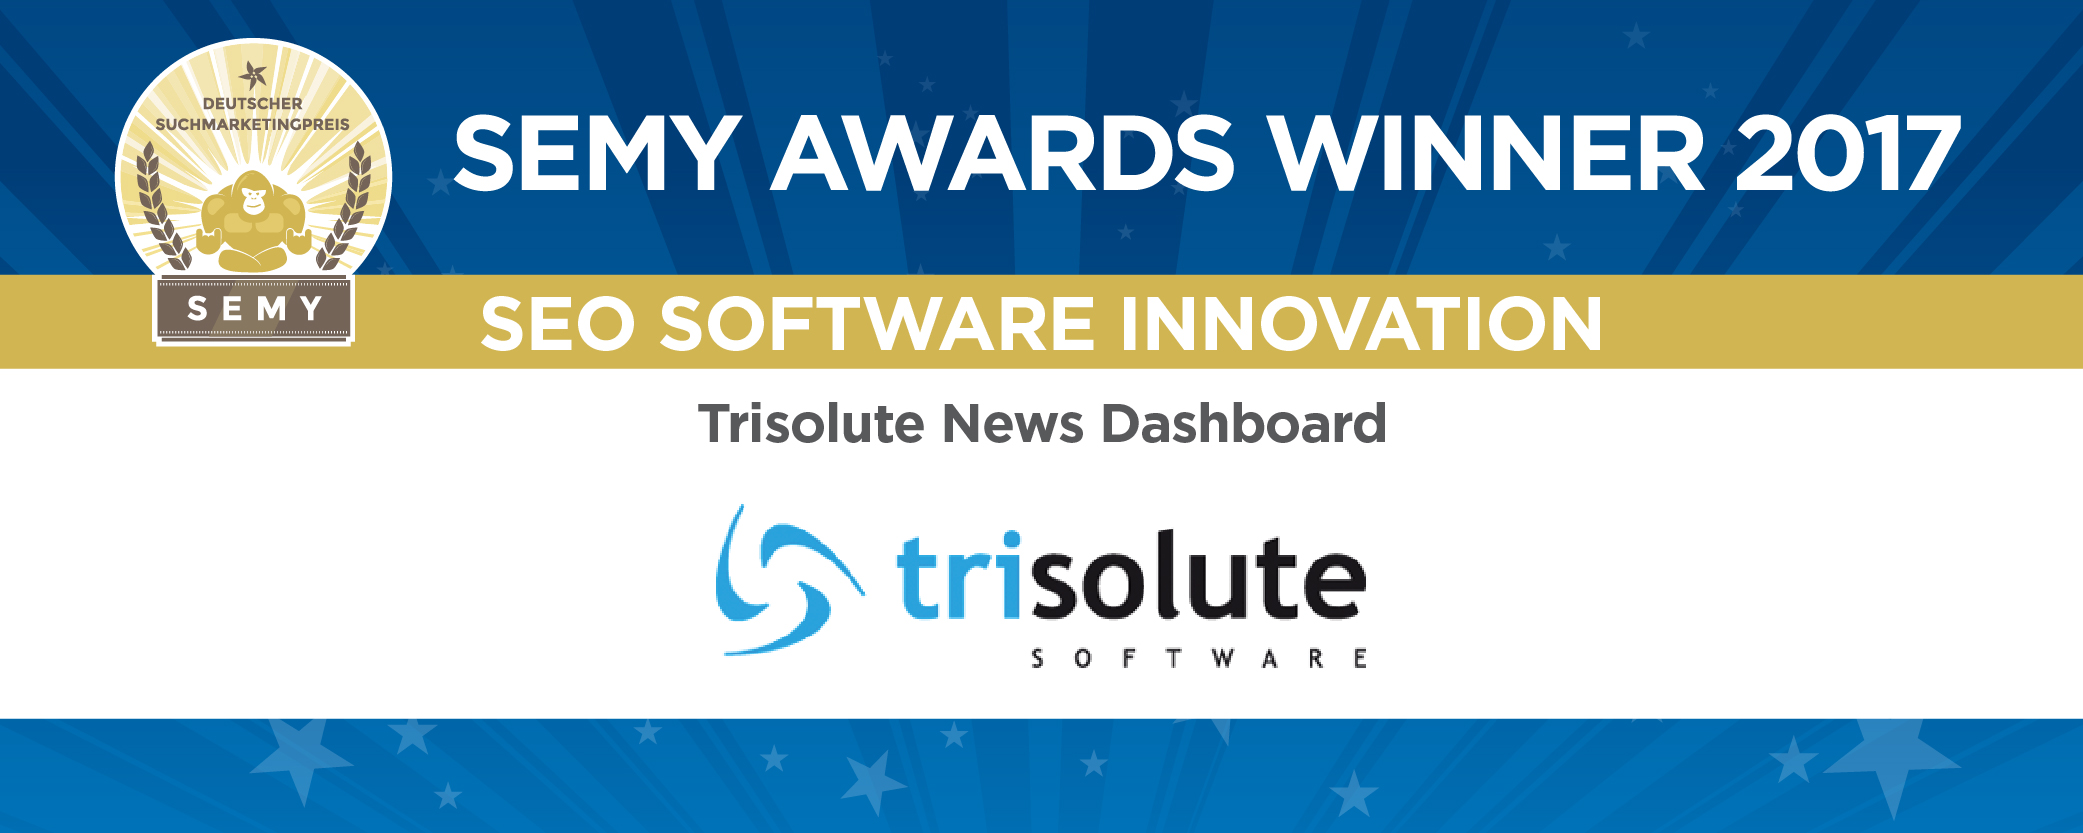 Das News Dashboard gewinnt in der SEMY-Kategorie SEO Software Innovation